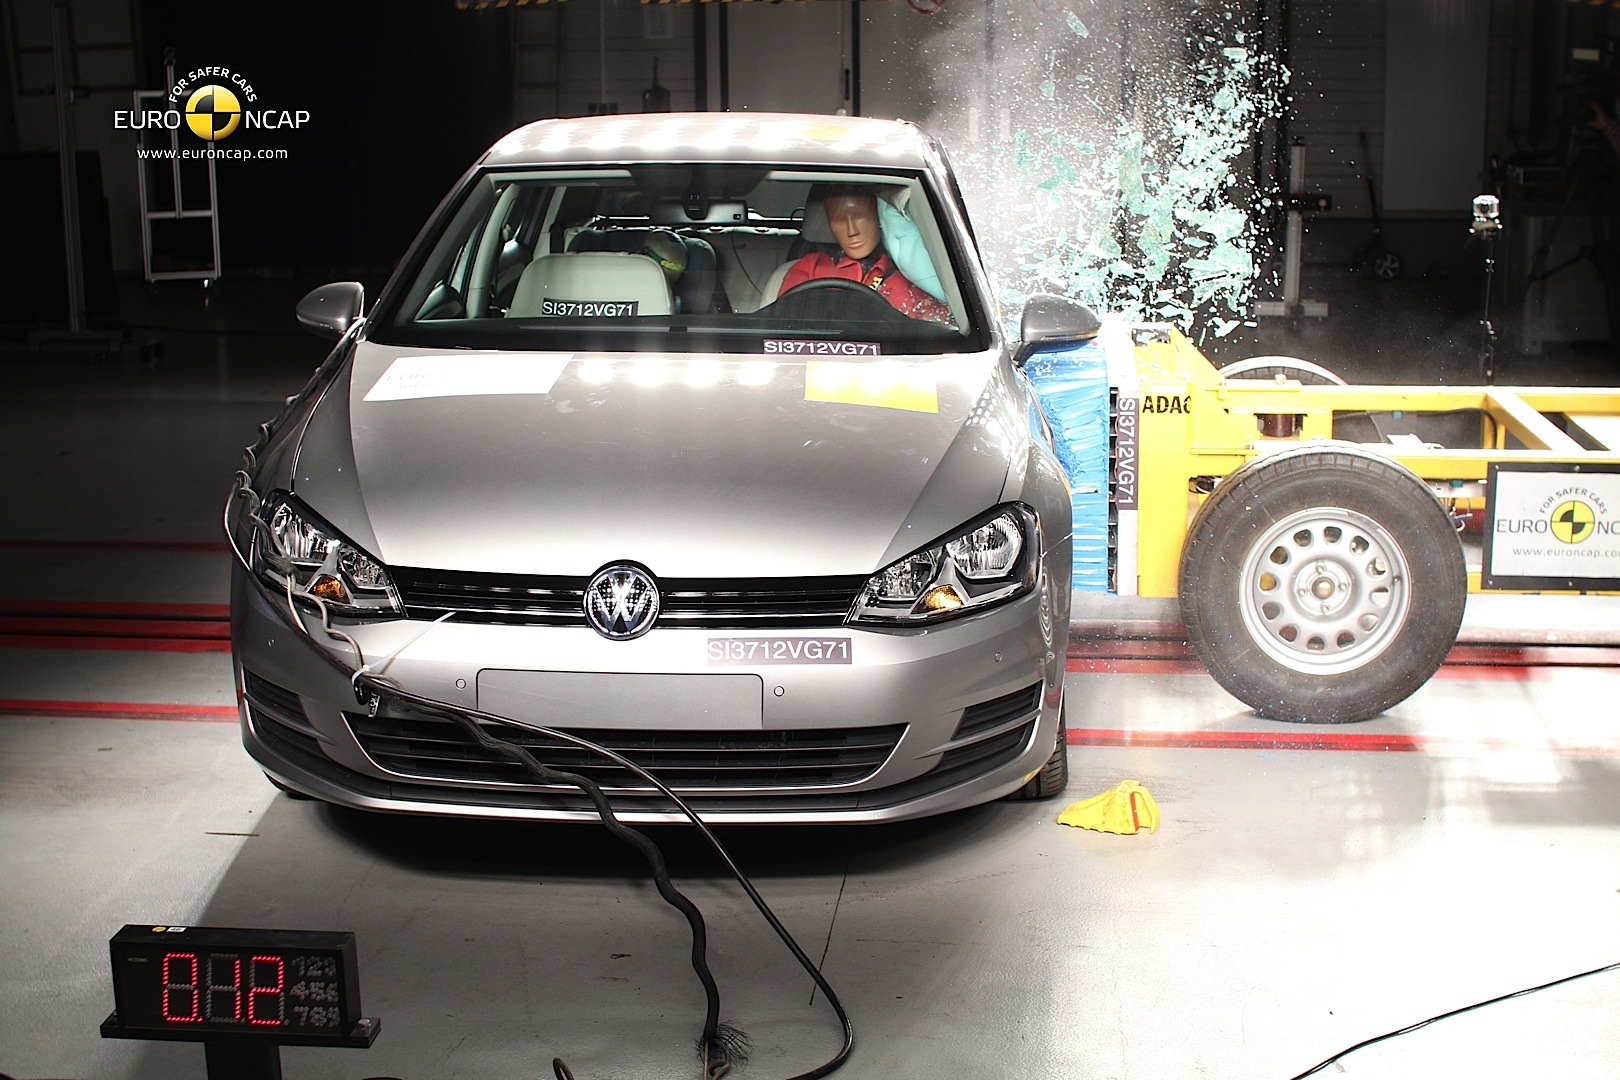 volkswagen golf vii awarded 5 star euro ncap rating. Black Bedroom Furniture Sets. Home Design Ideas